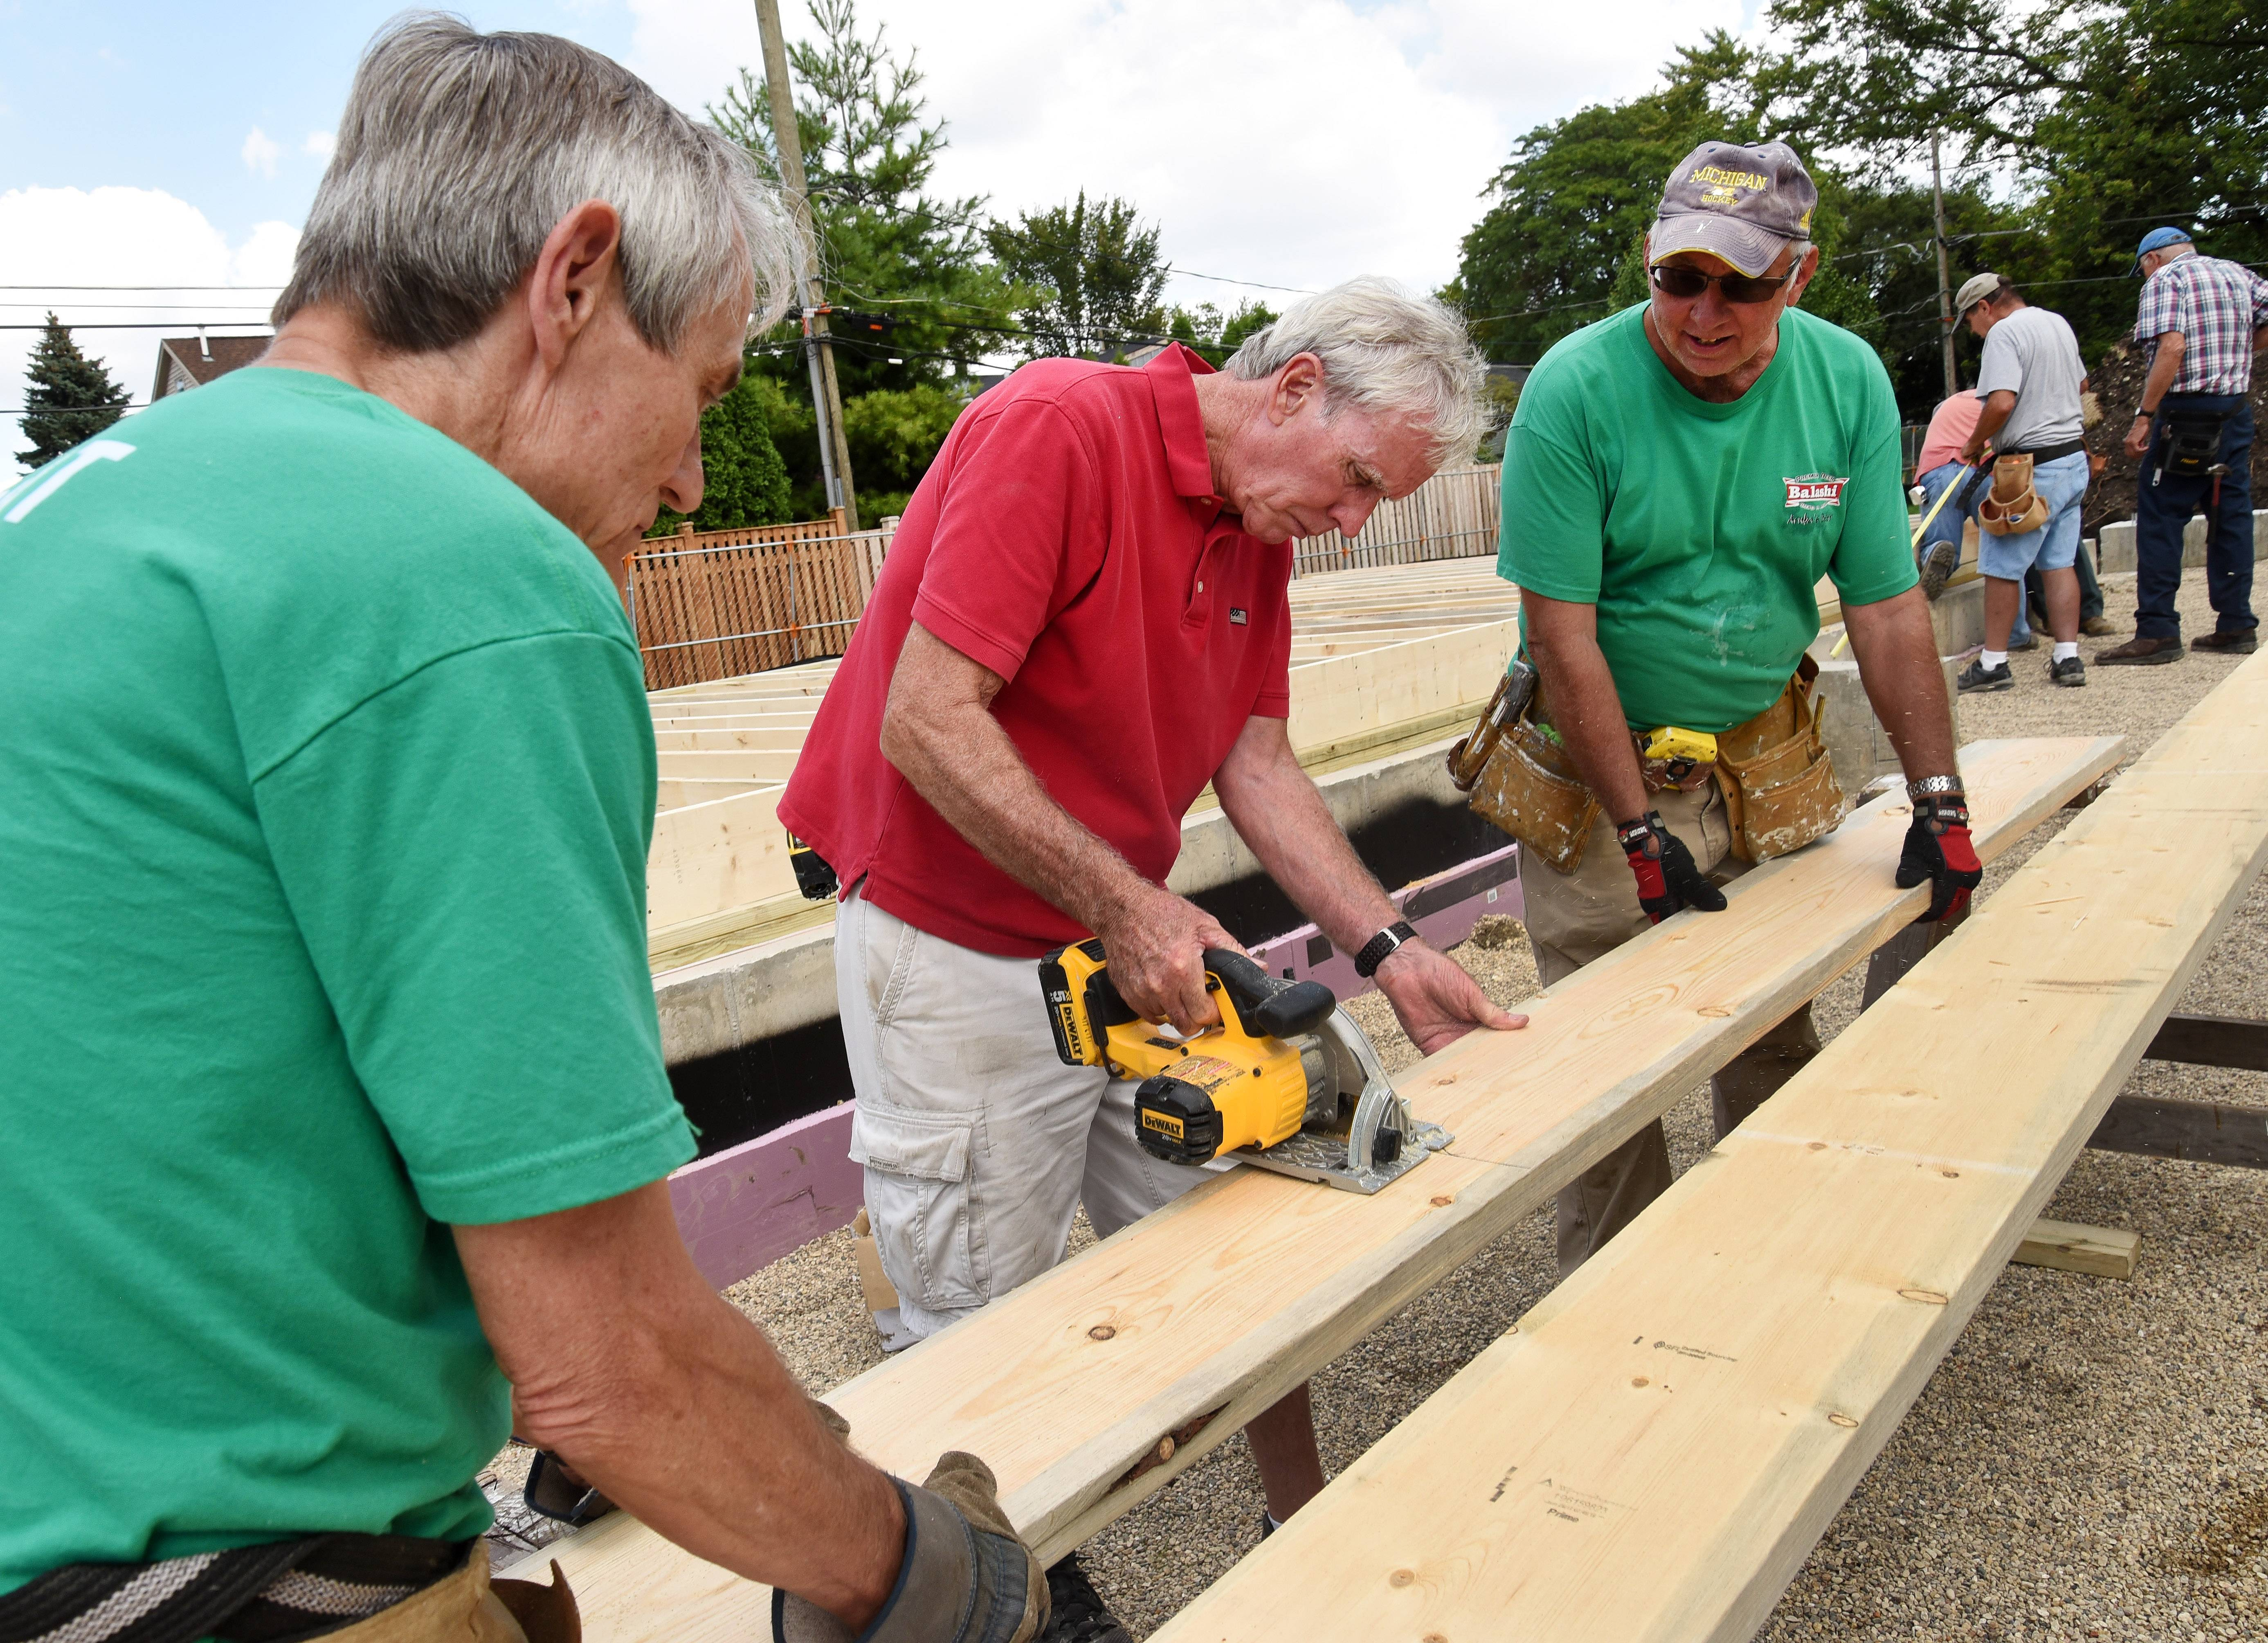 John Wise, lead construction manager, center, of Hoffman Estates, works with Curt Siegel of Palatine, left, and Mike Rekruciak of Elk Grove as work is underway at the first Habitat for Humanity home in Des Plaines.